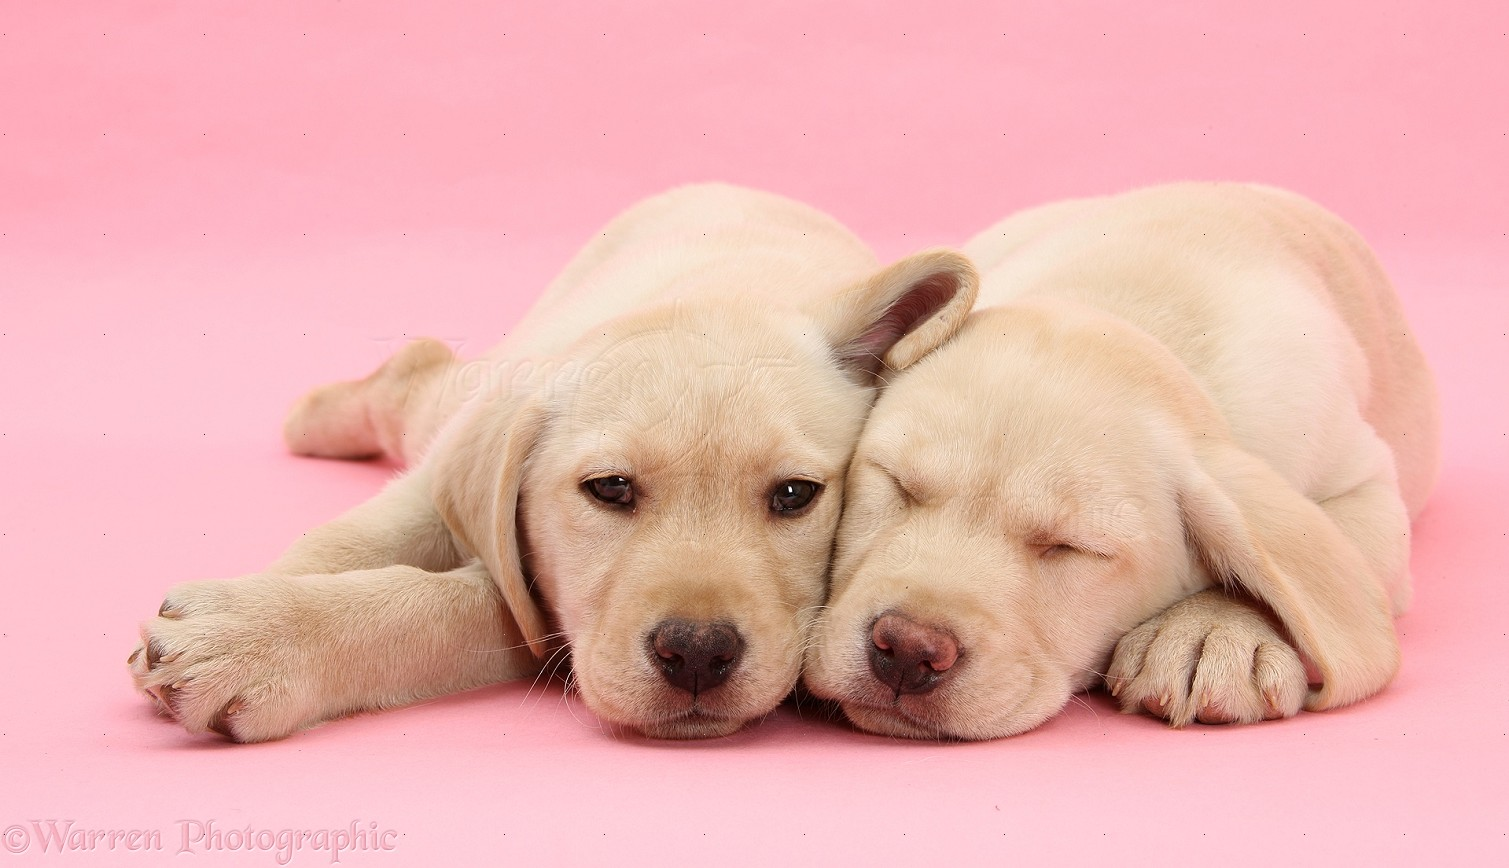 Puppy Wallpapers HD Desktop Backgrounds Images and Pictures